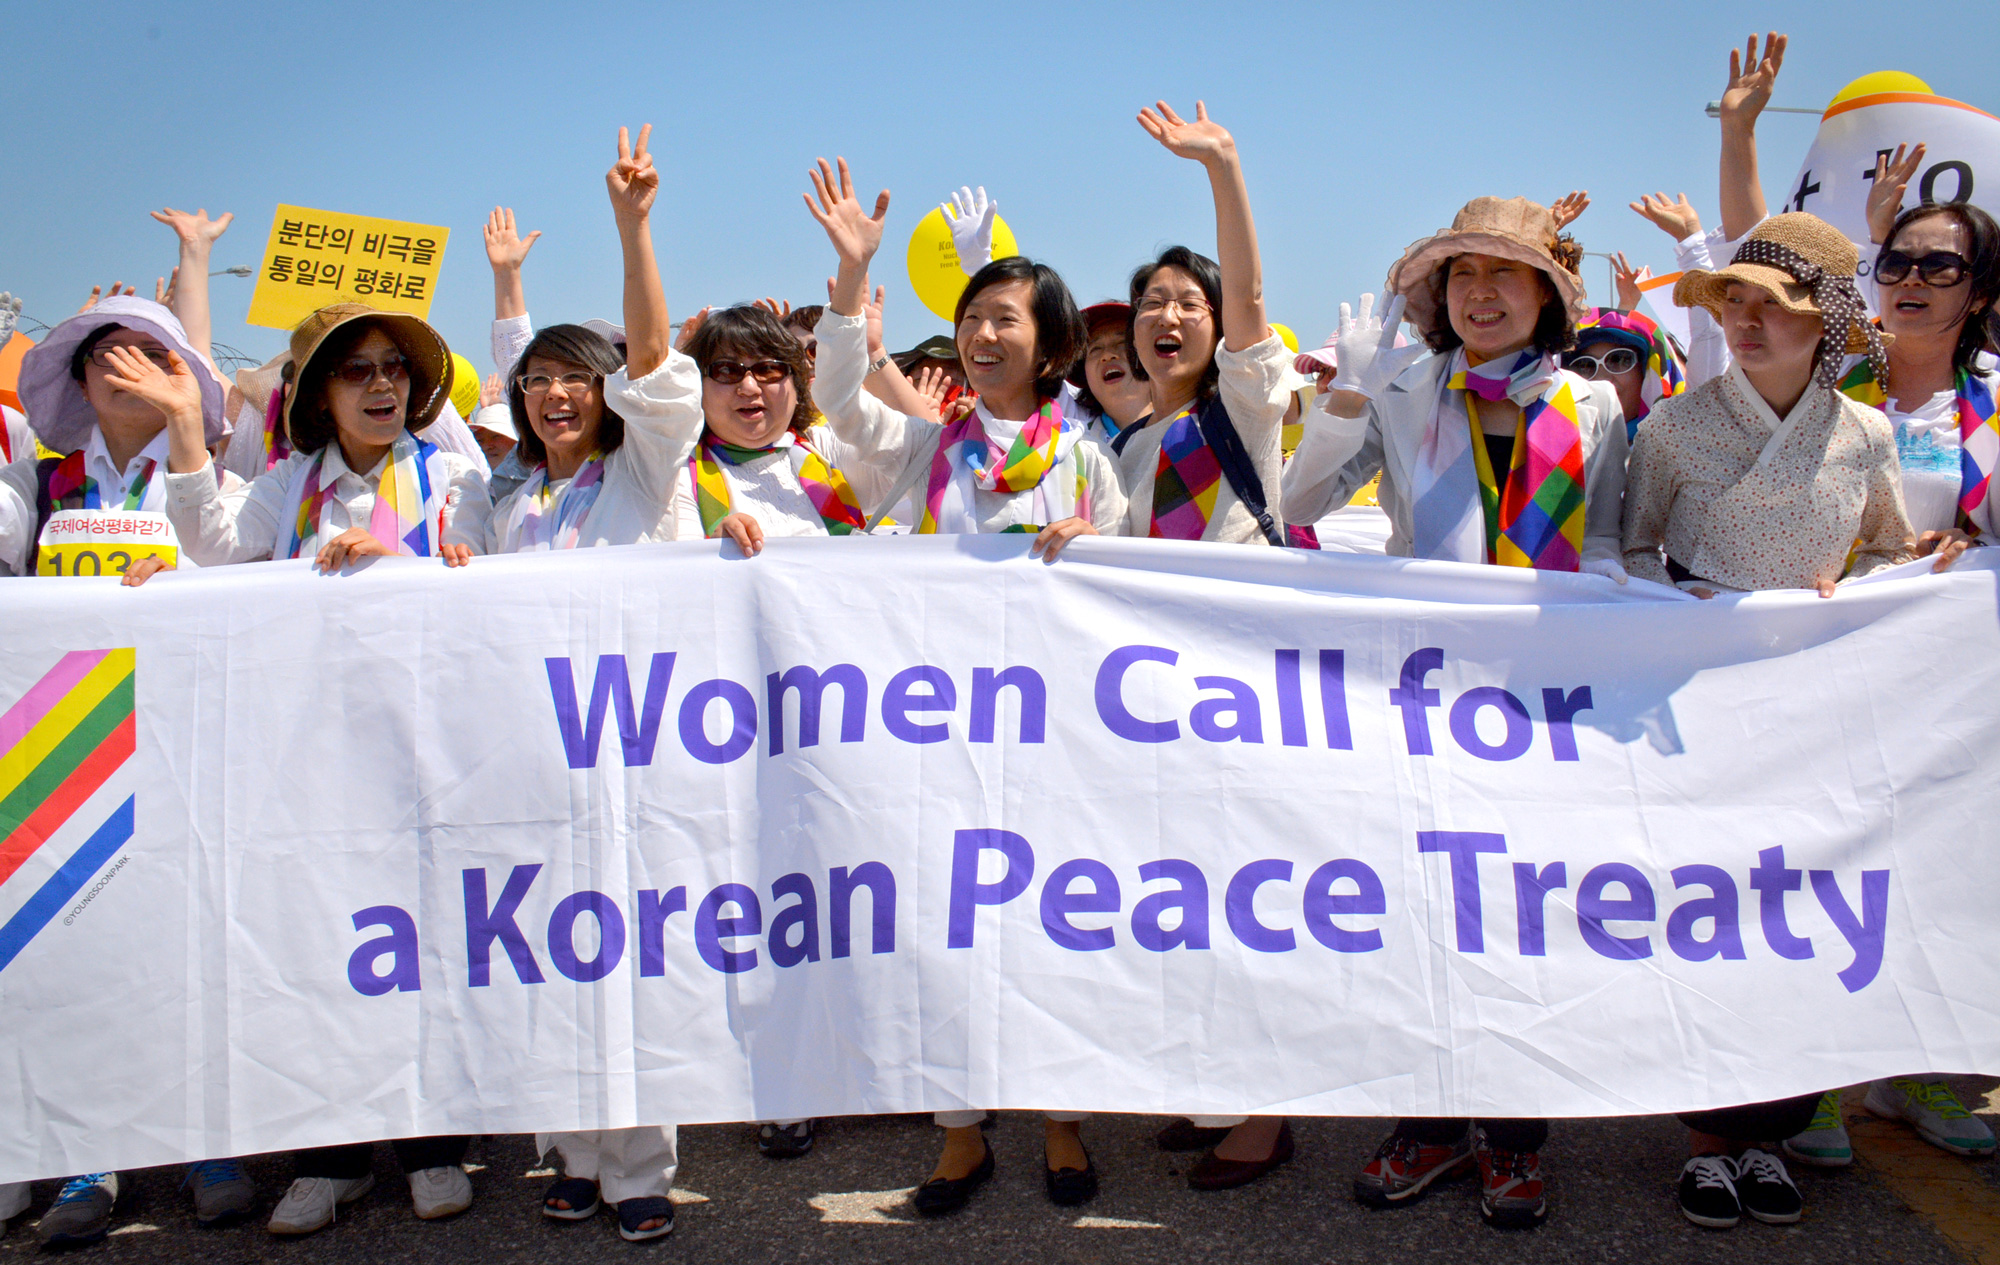 Women Call for Korean Peace Treaty supporters